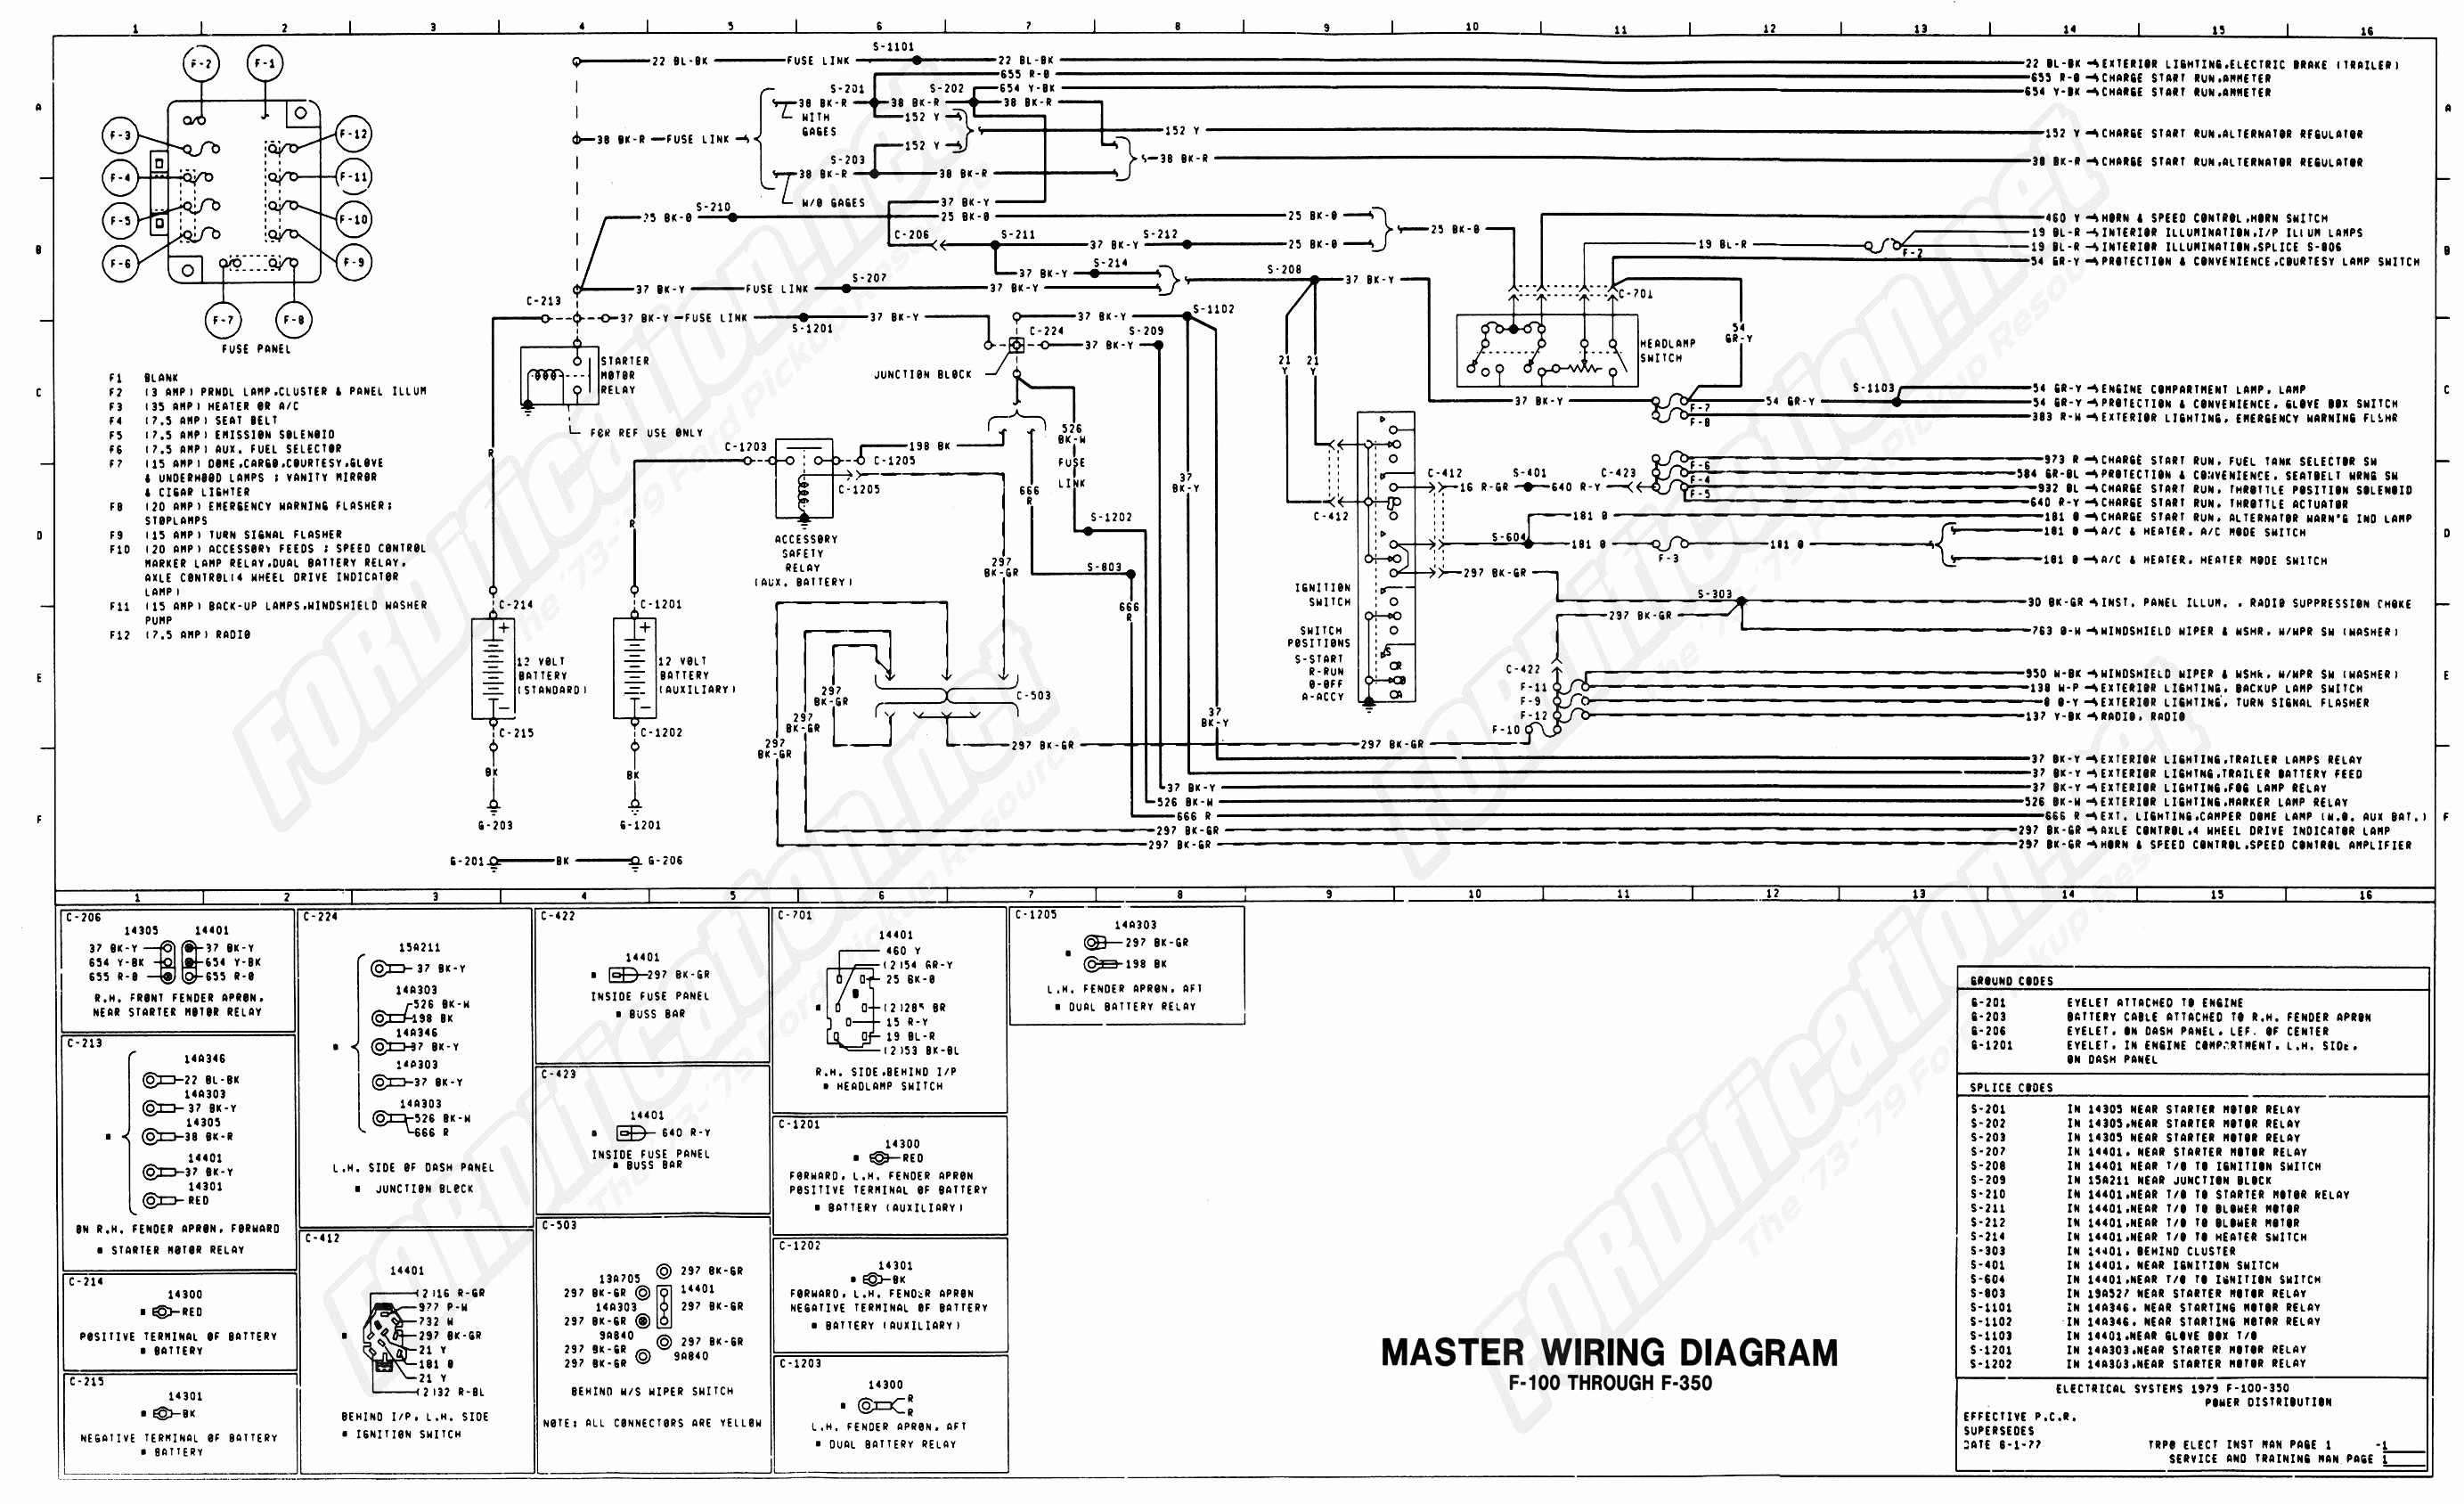 1979 ford fuse box diagram electrical wiring diagram house u2022 rh universalservices co 1973 ford ranchero fuse box Old Fuse Box